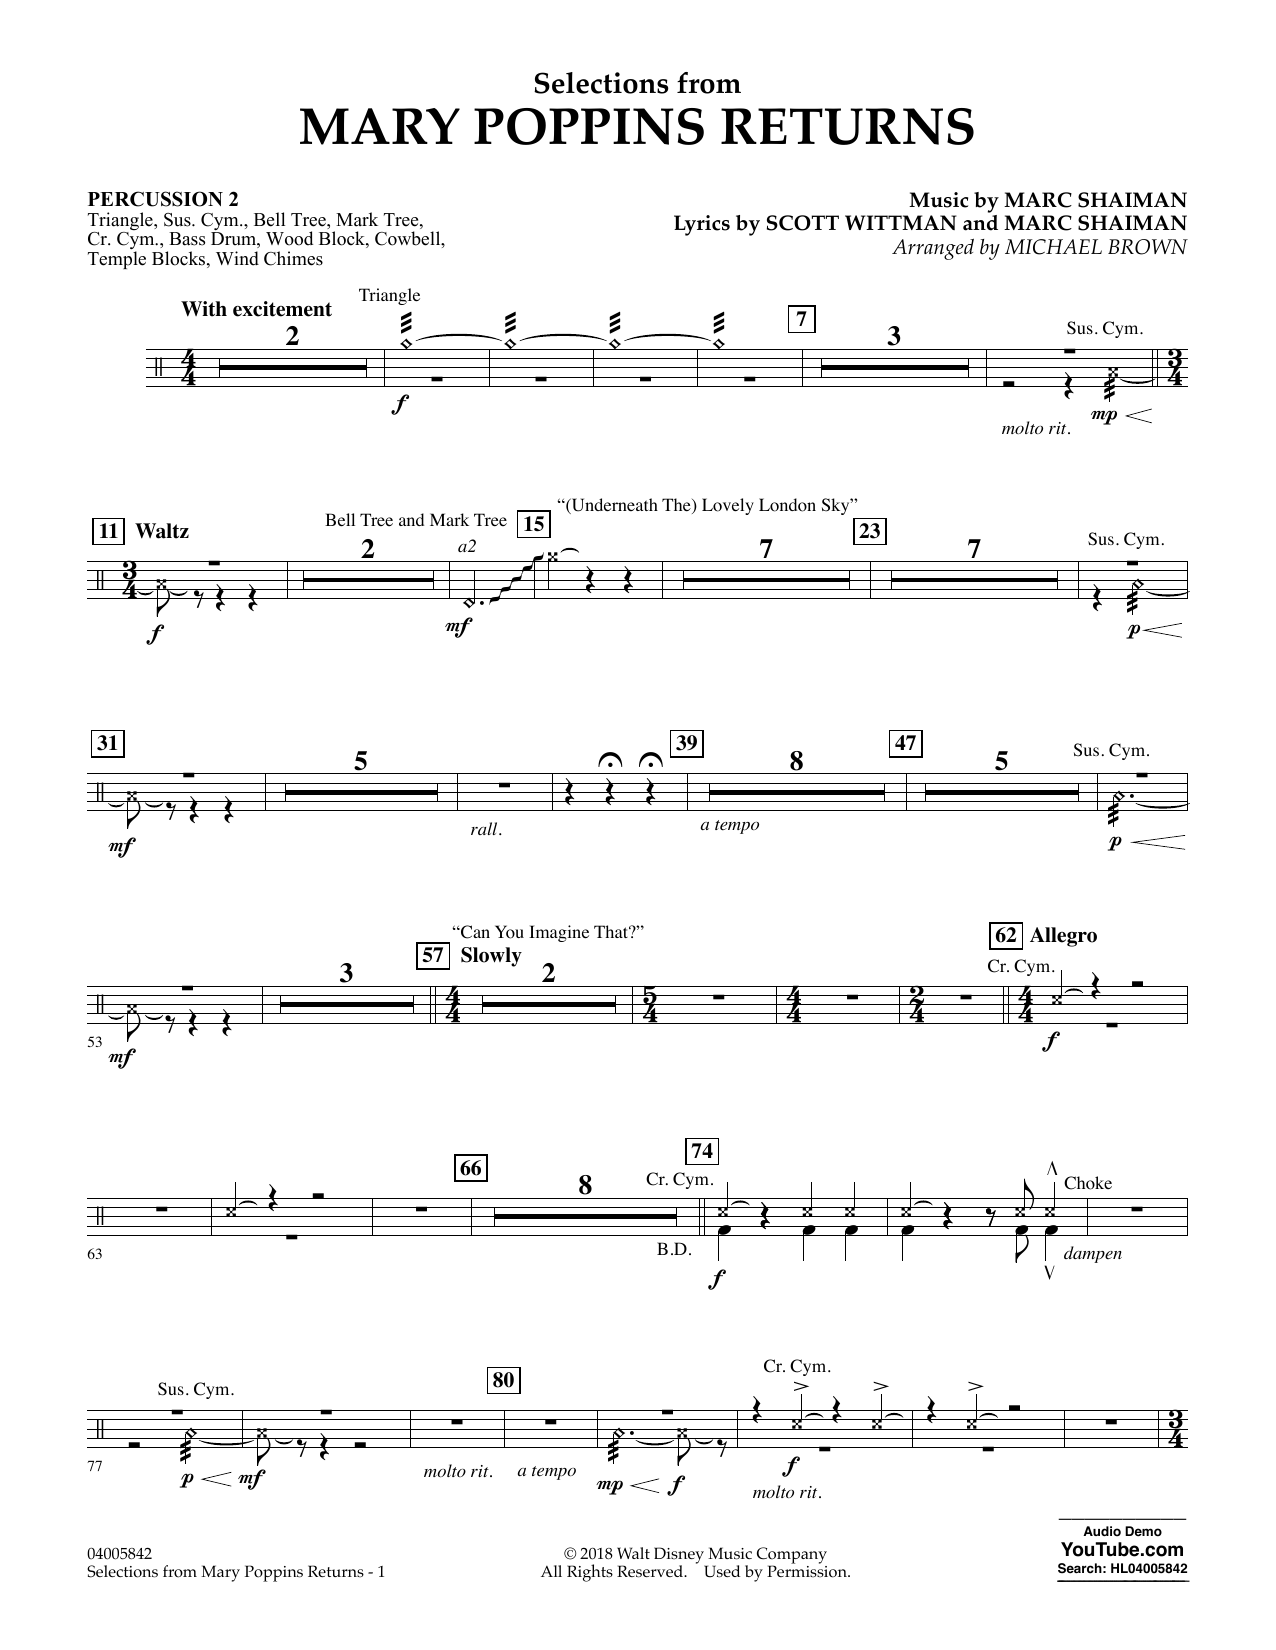 Selections from Mary Poppins Returns (arr. Michael Brown) - Percussion 2 (Concert Band)